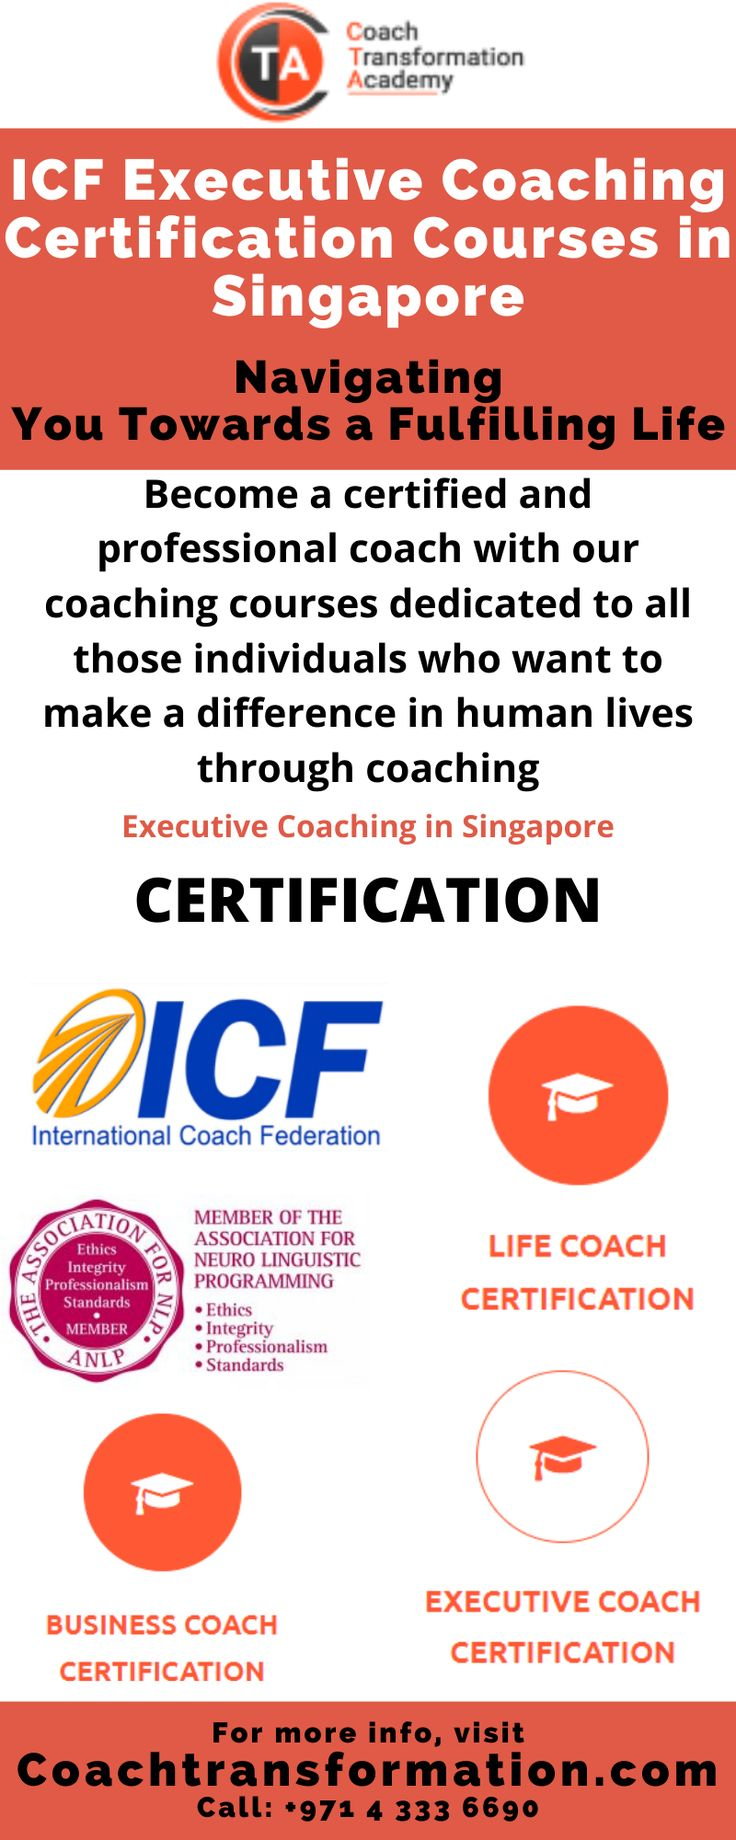 coaching coach icf academy coachtransformation certification transformation courses career